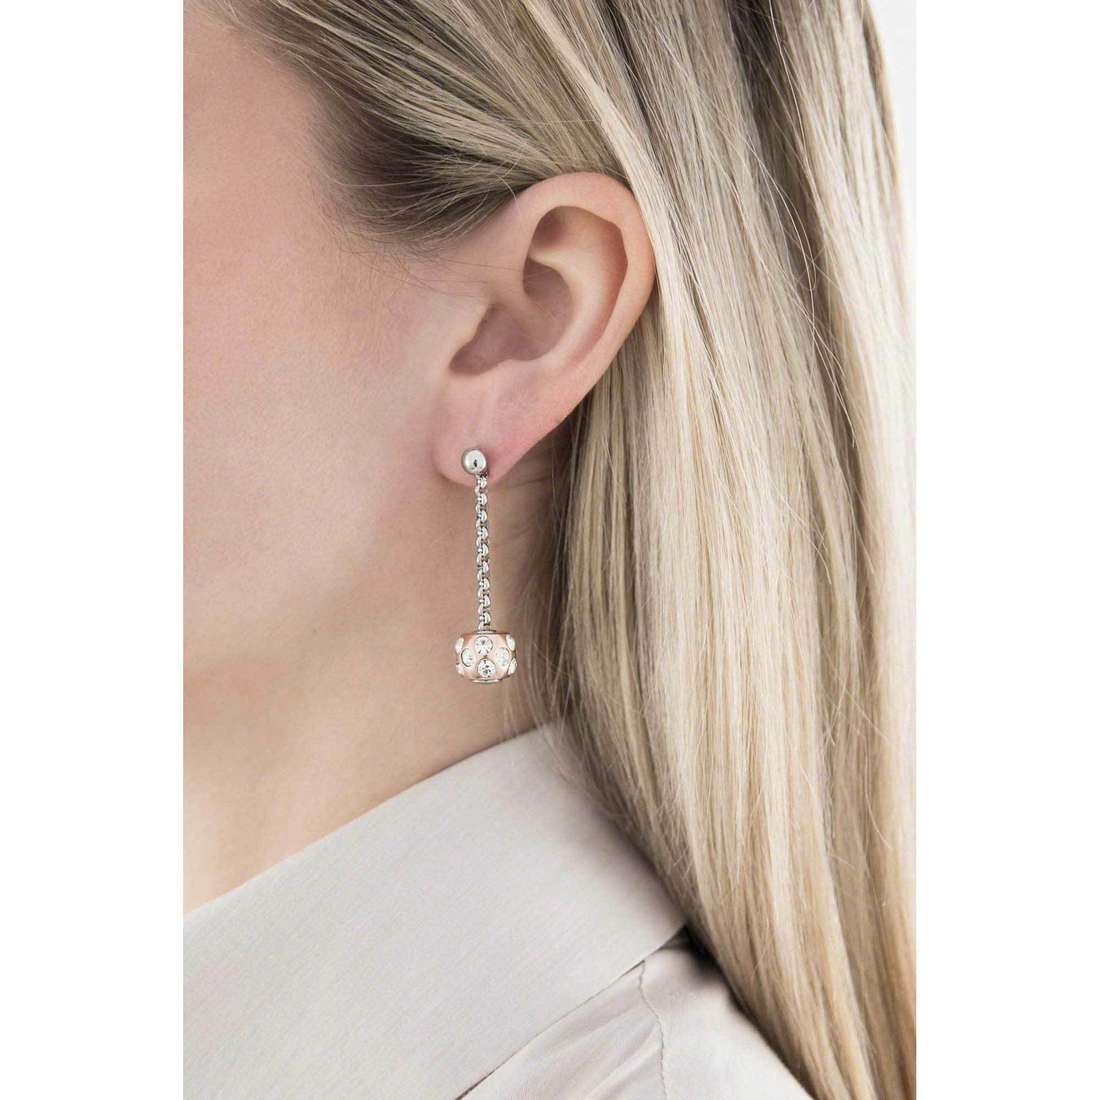 Morellato earrings Drops woman SCZ413 indosso